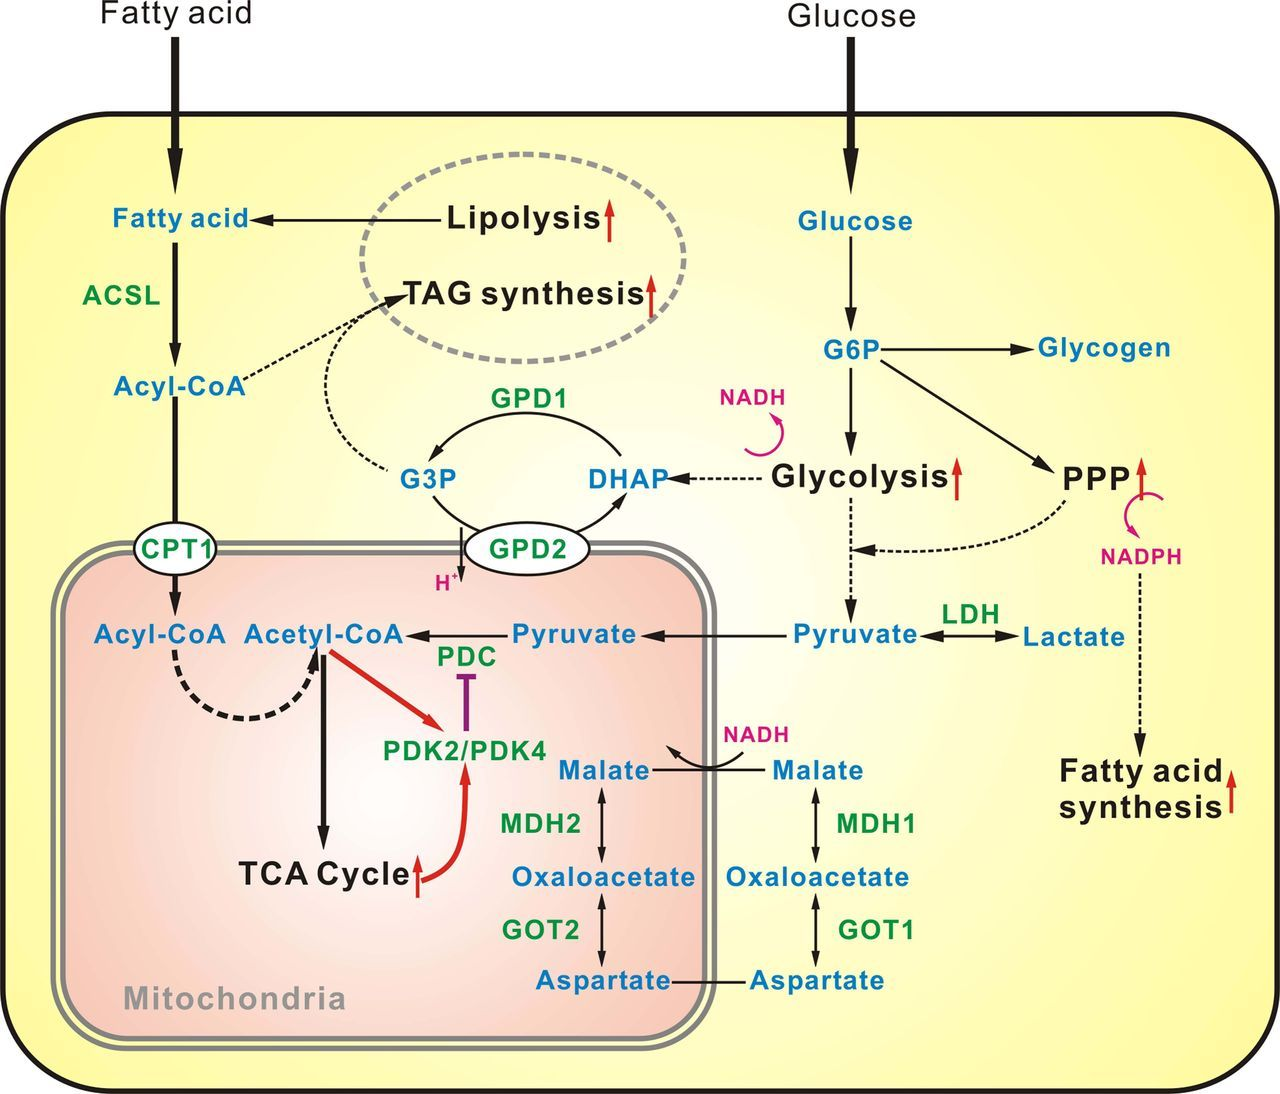 glucose metabolism Glucagon and regulation of glucose metabolism  to increase blood glucose, glucagon promotes hepatic glucose output by increasing glycogenolysis and gluconeogenesis and by decreasing glycogenesis and glycolysis in a concerted fashion via multiple mechanisms compared with healthy subjects, diabetic patients and animals have abnormal.